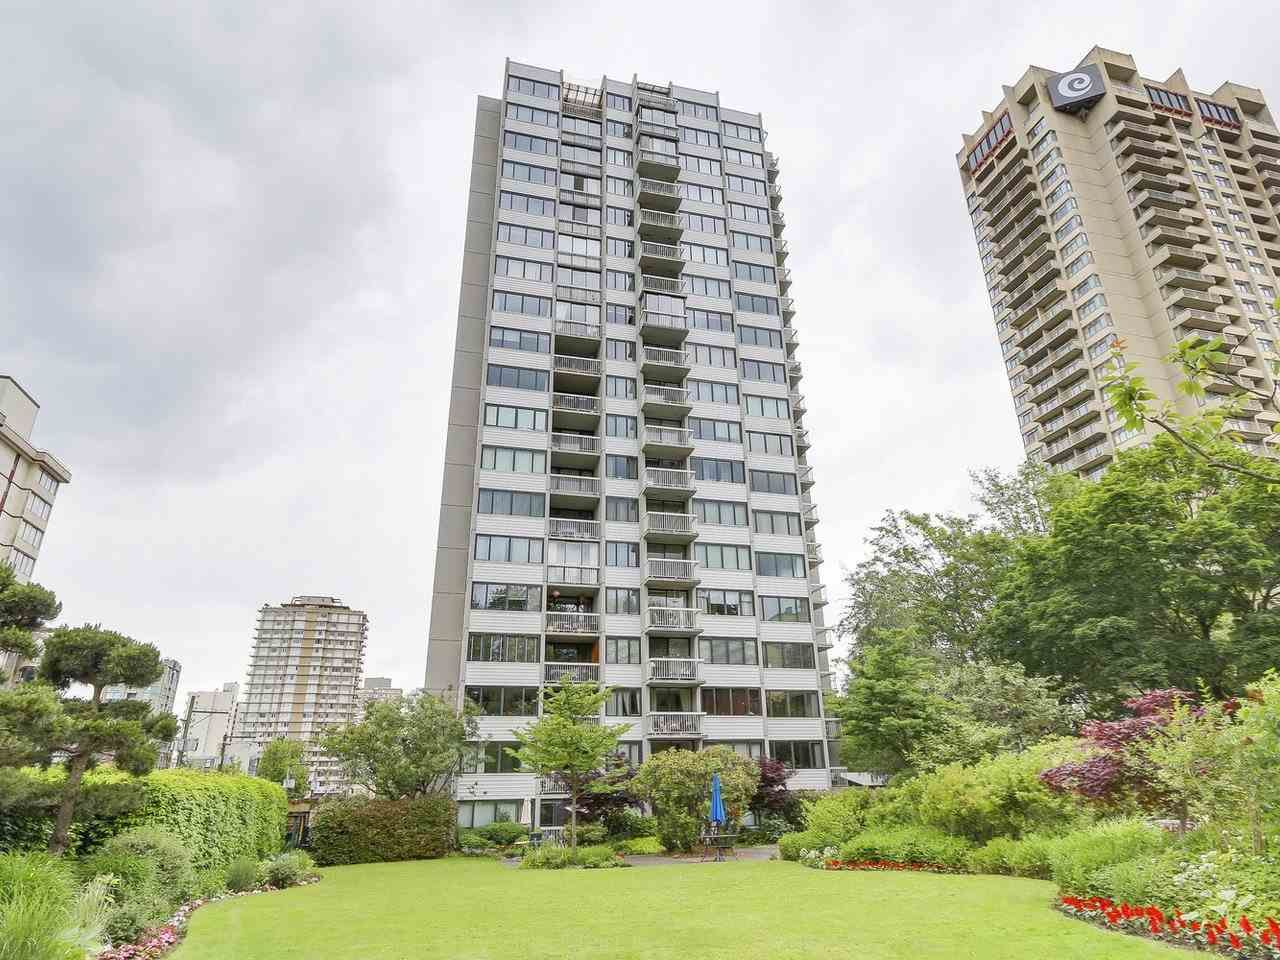 """Main Photo: 304 1740 COMOX Street in Vancouver: West End VW Condo for sale in """"The Sandpiper"""" (Vancouver West)  : MLS®# R2178648"""